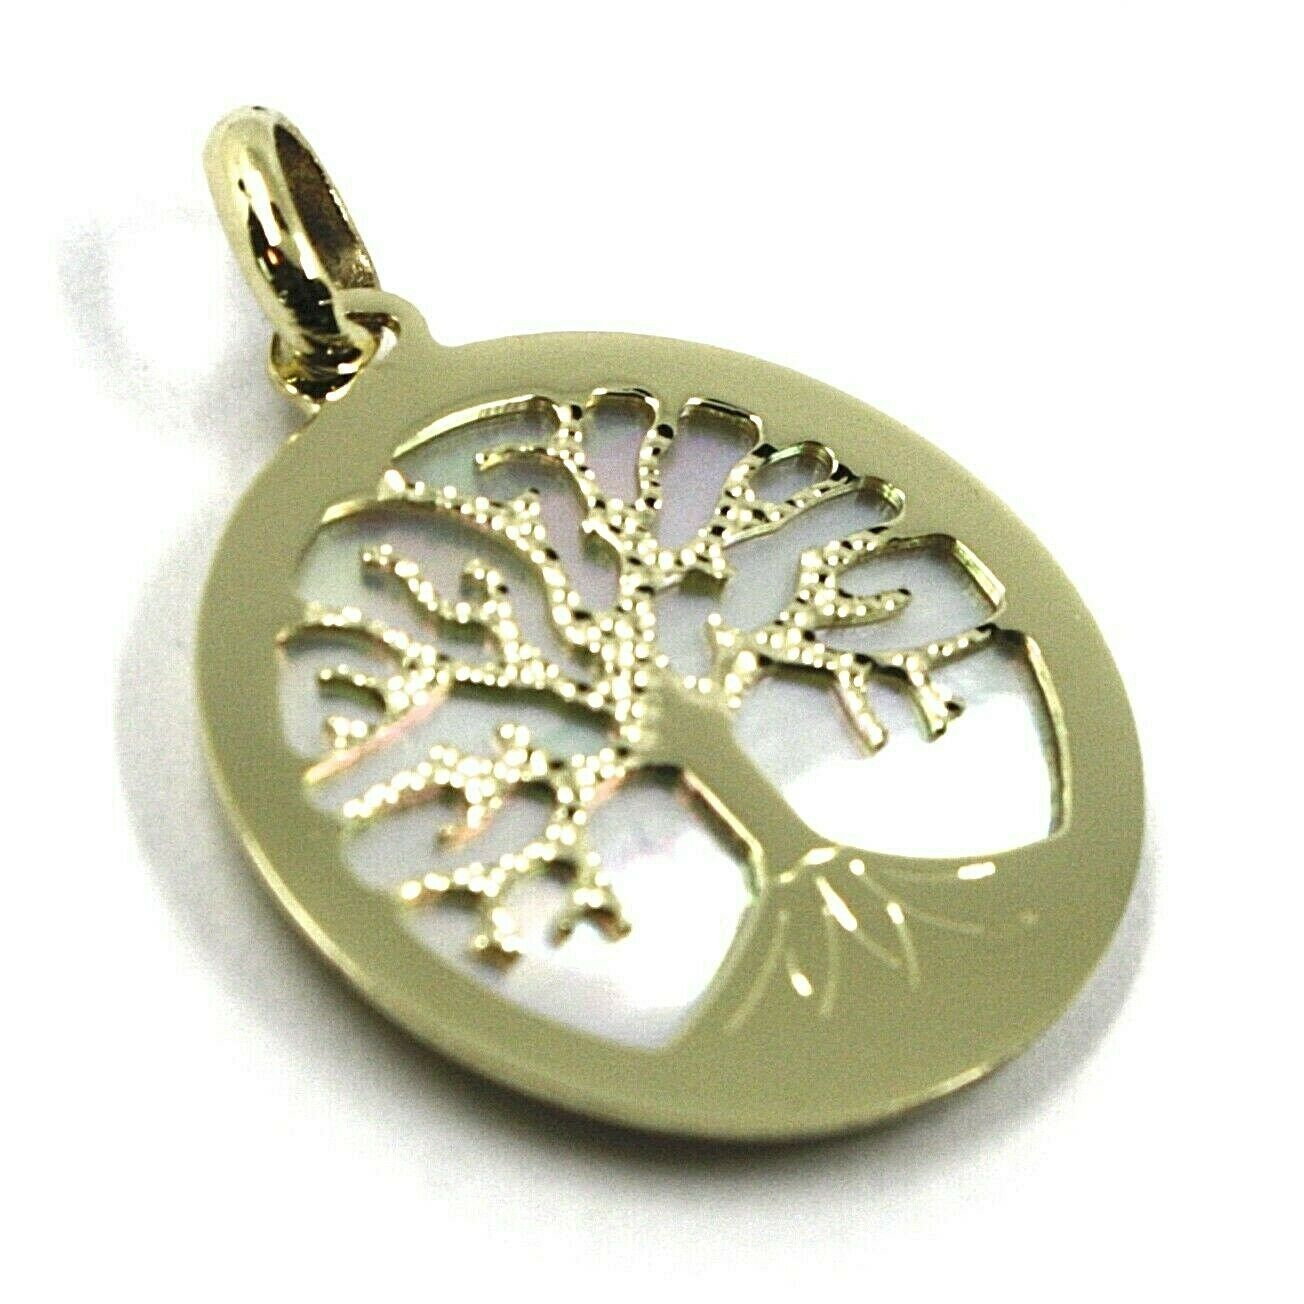 Primary image for 9K YELLOW GOLD PENDANT, TREE OF LIFE DISC, DIAMETER 17 MM, MOTHER OF PEARL